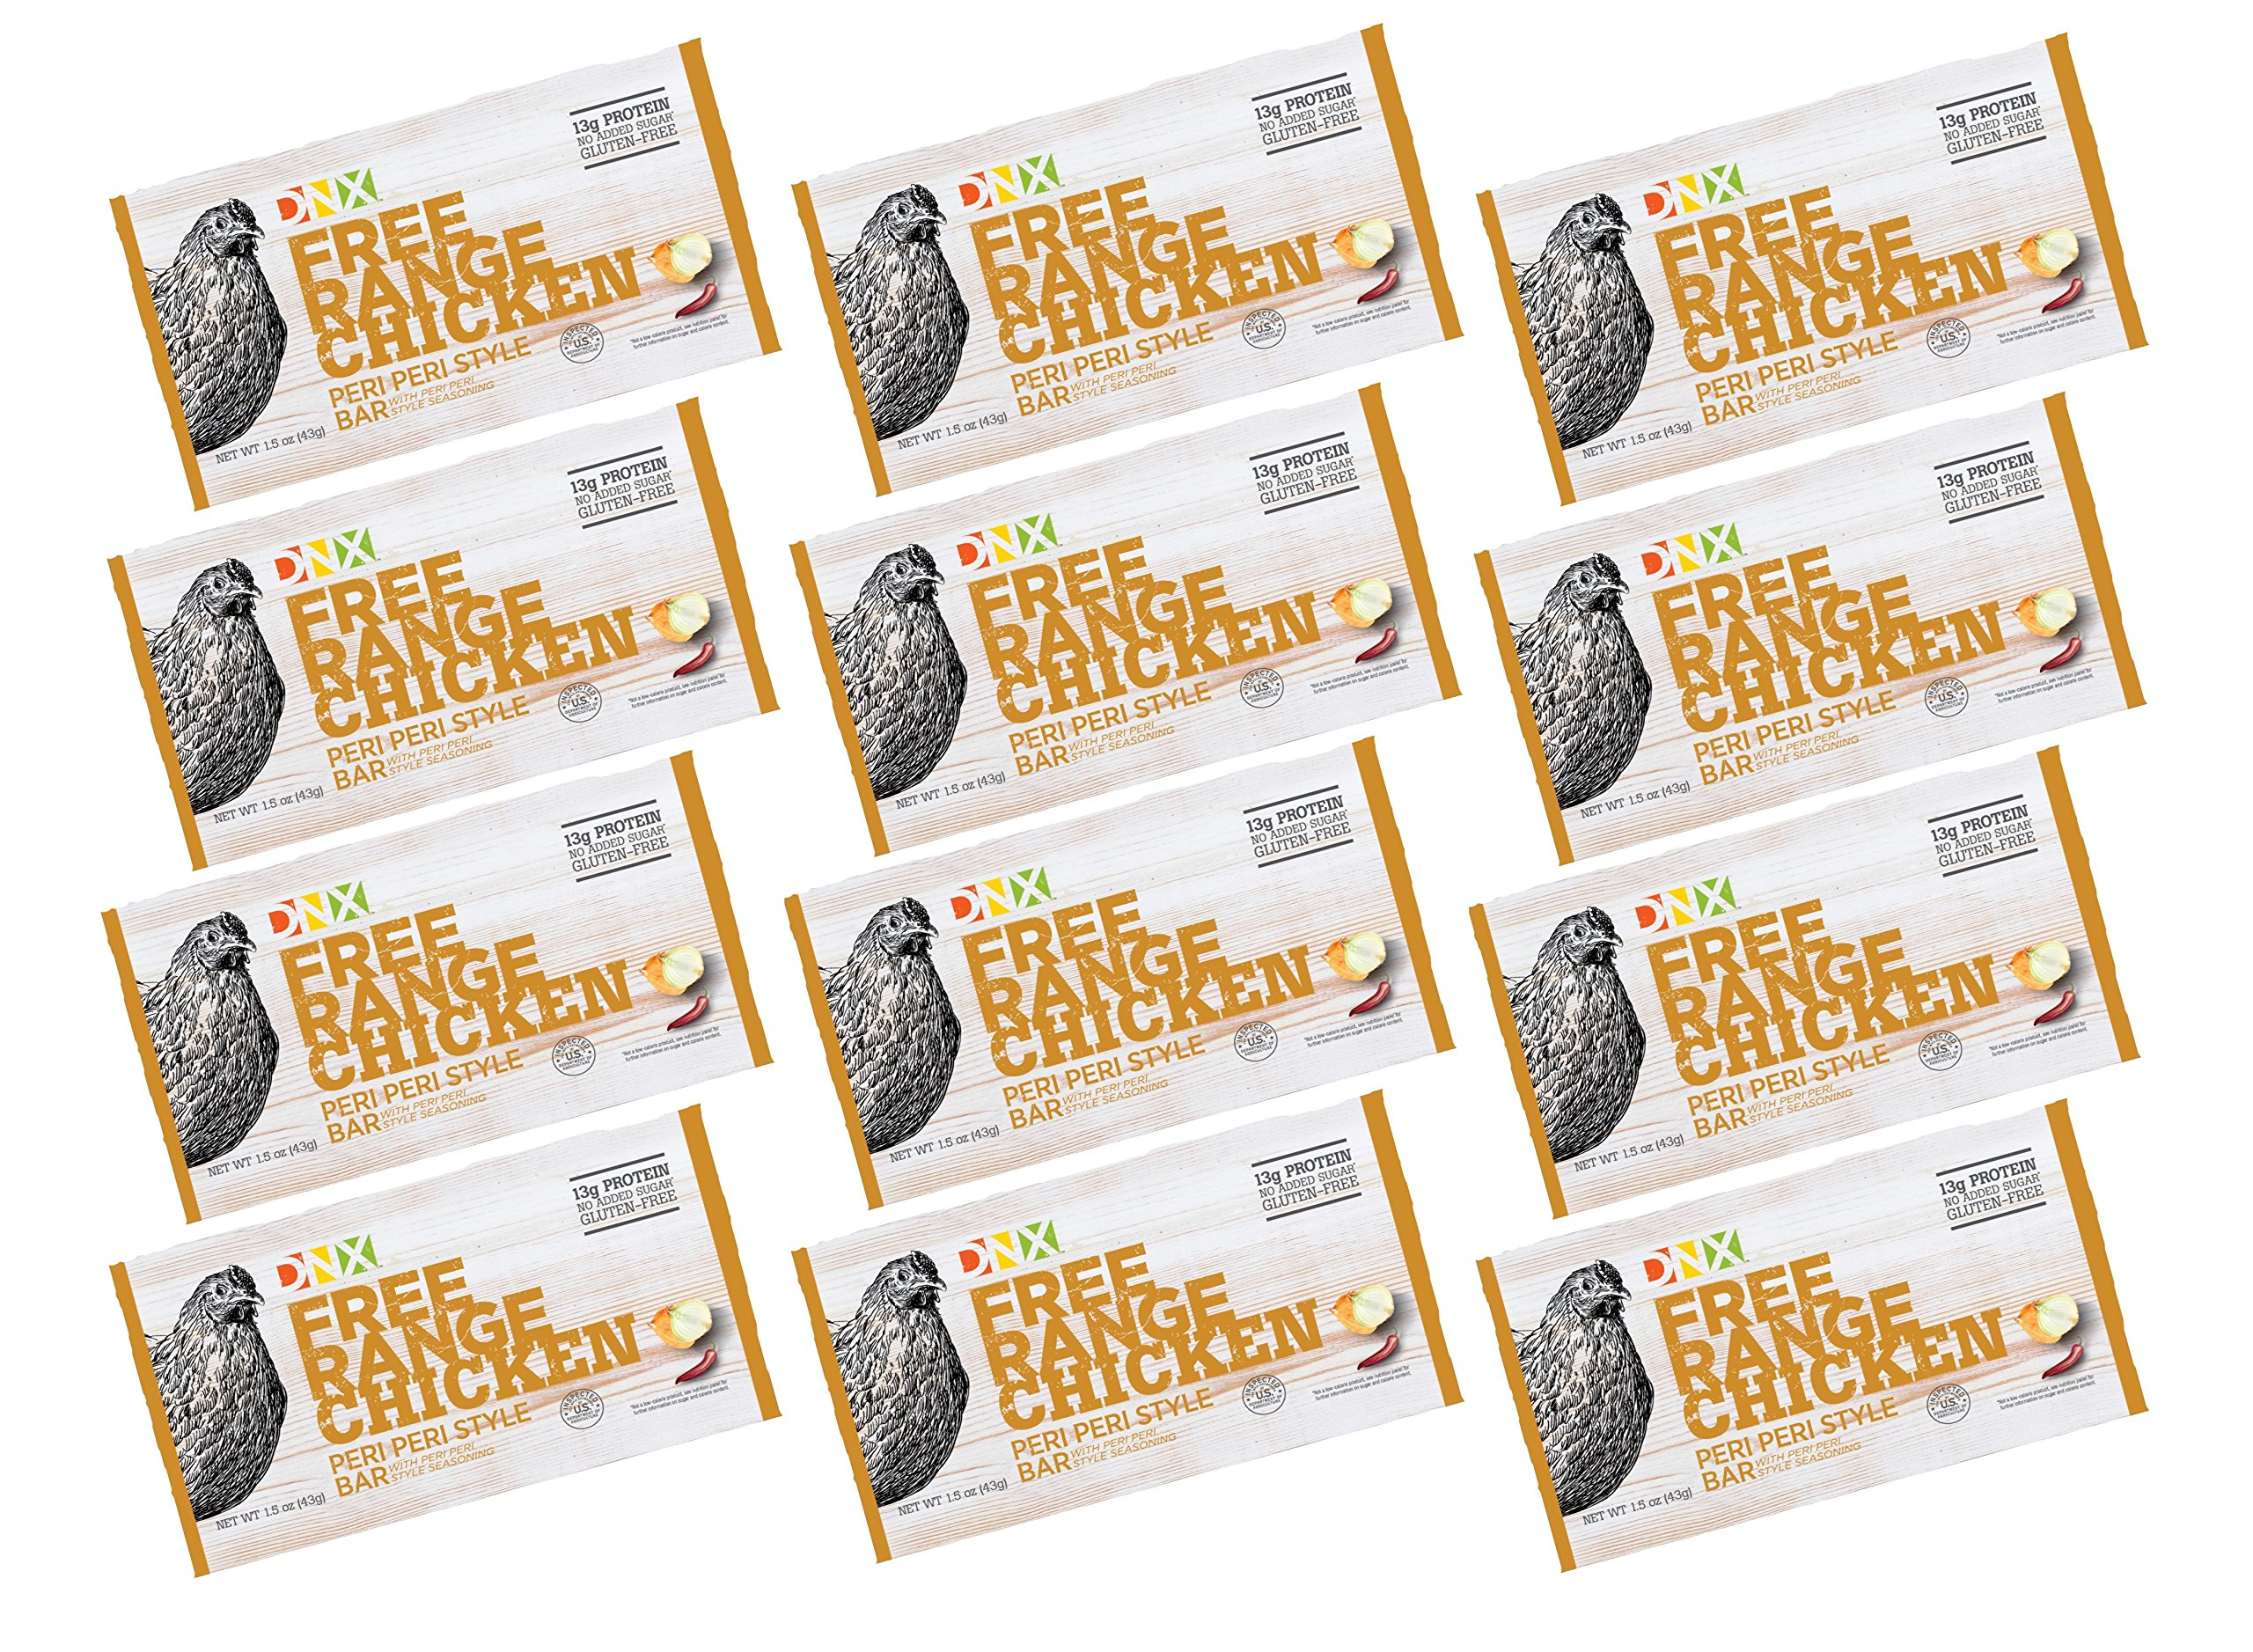 DNX Bar -Free Range Chicken Peri Peri Style Paleo Protein Bar-Organic Spices, Gluten Free, Whole30 Approved, Keto Protein Bar with a Truly Epic Taste (12 Bars)